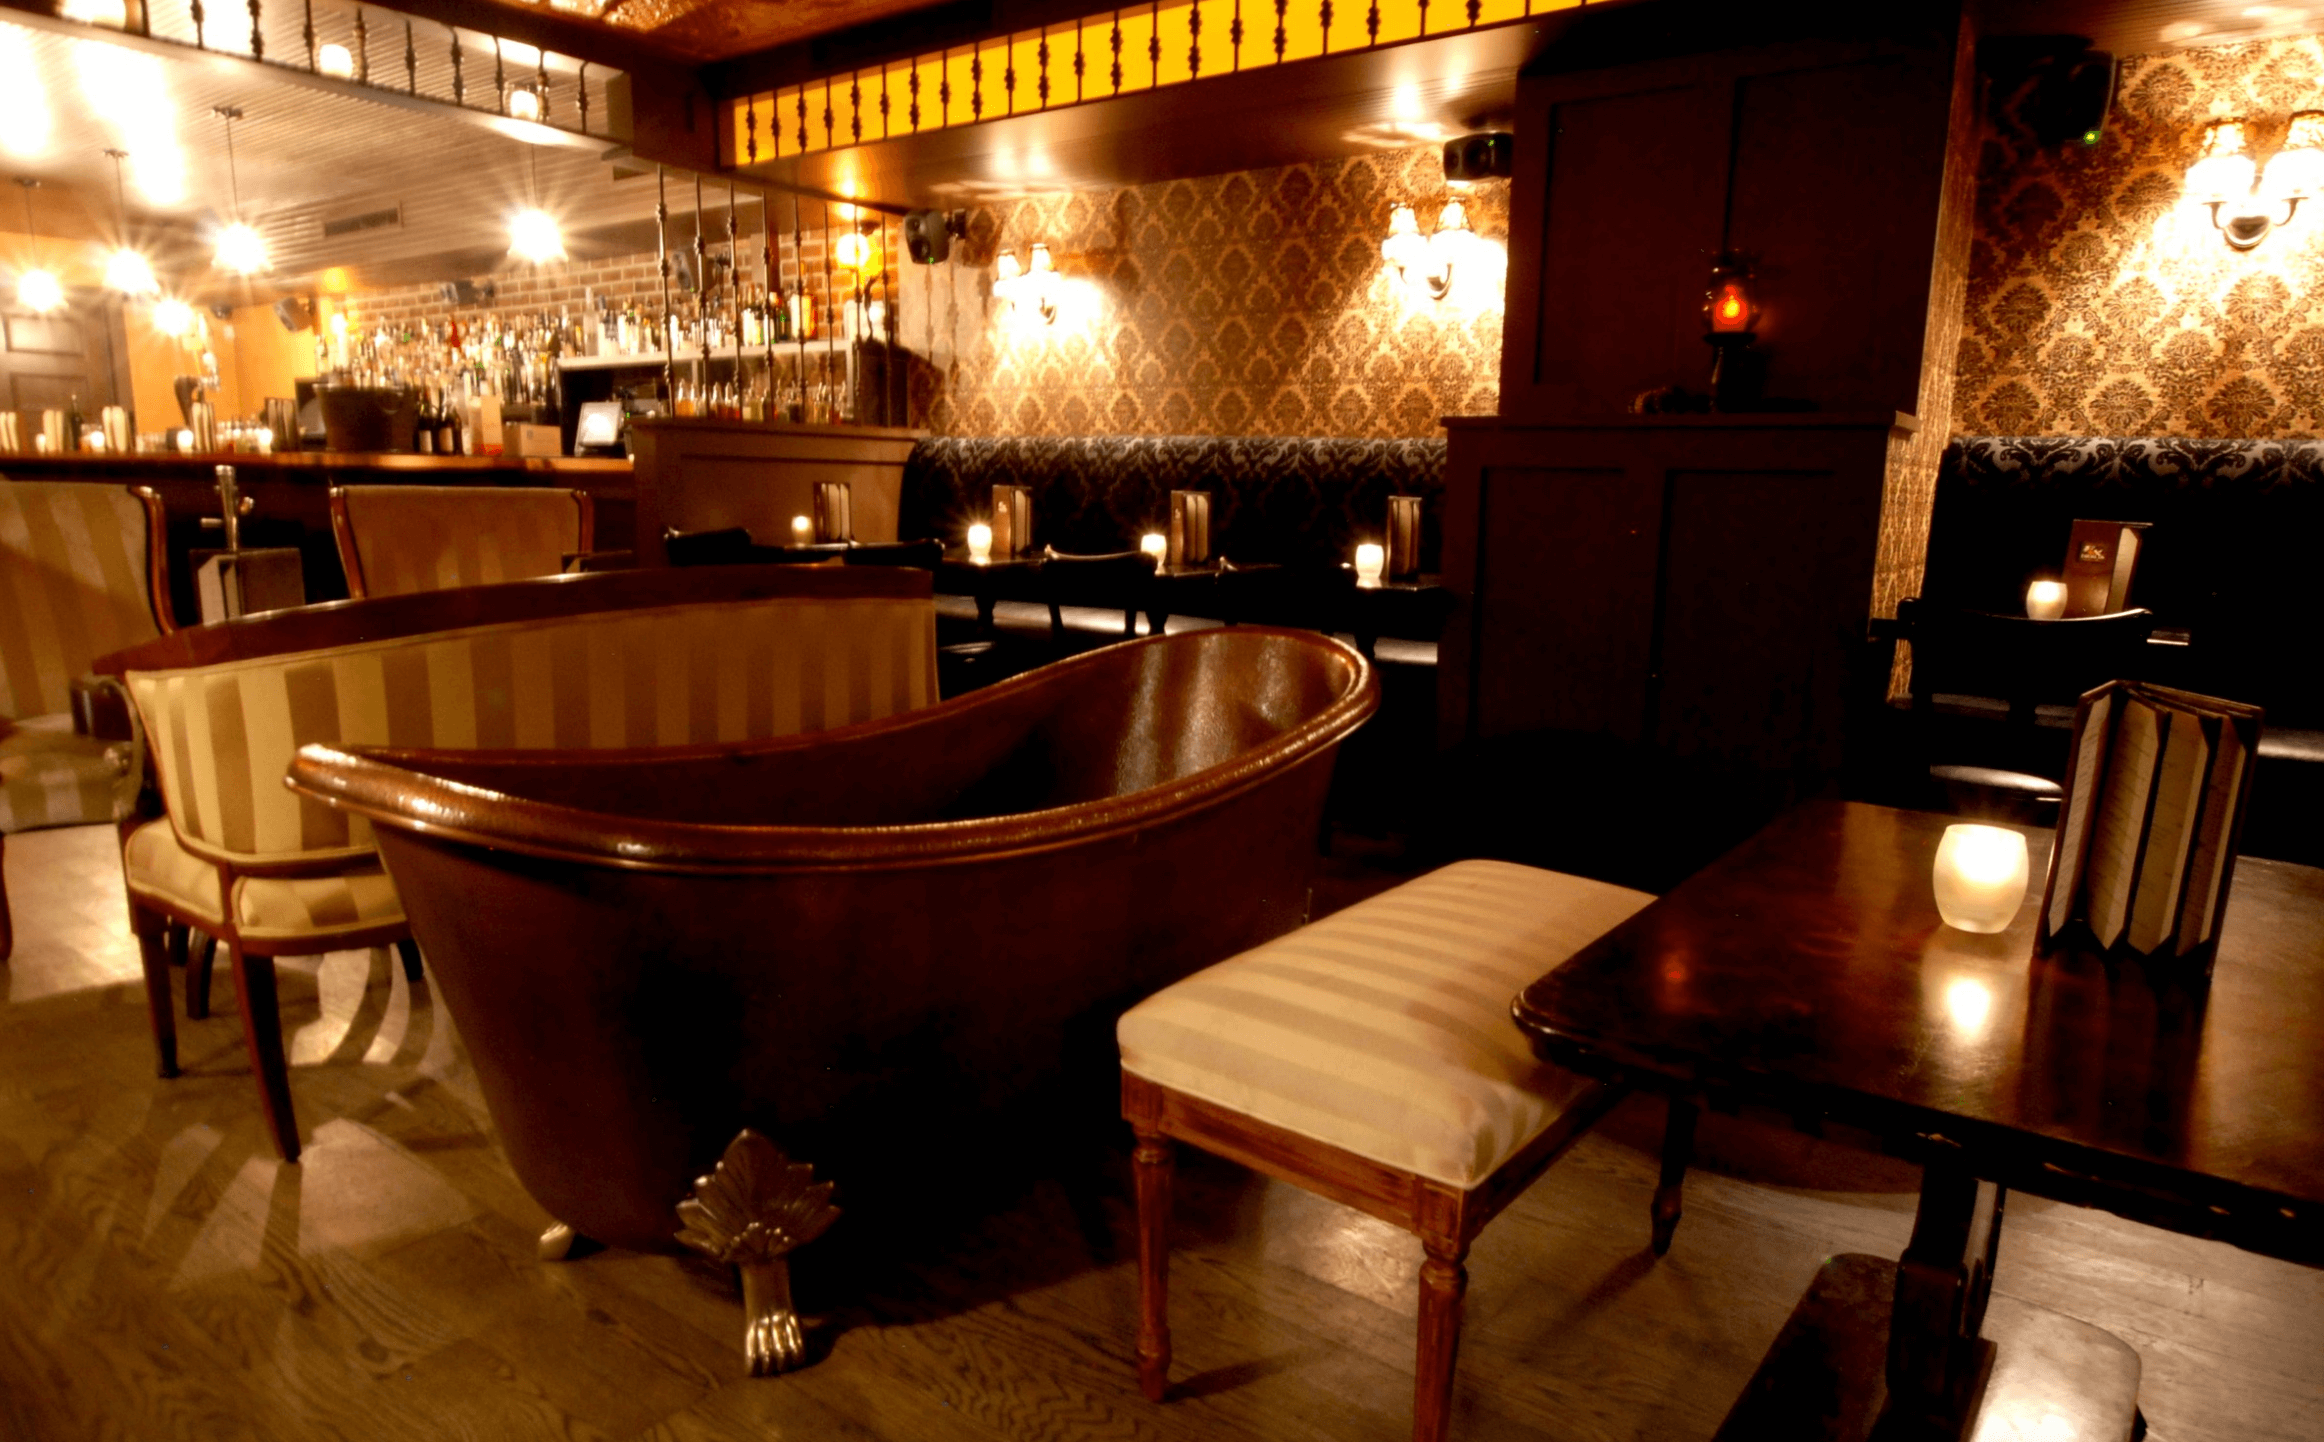 Nightlife Bars Bathtub Gin Speakeasy Decor Tables